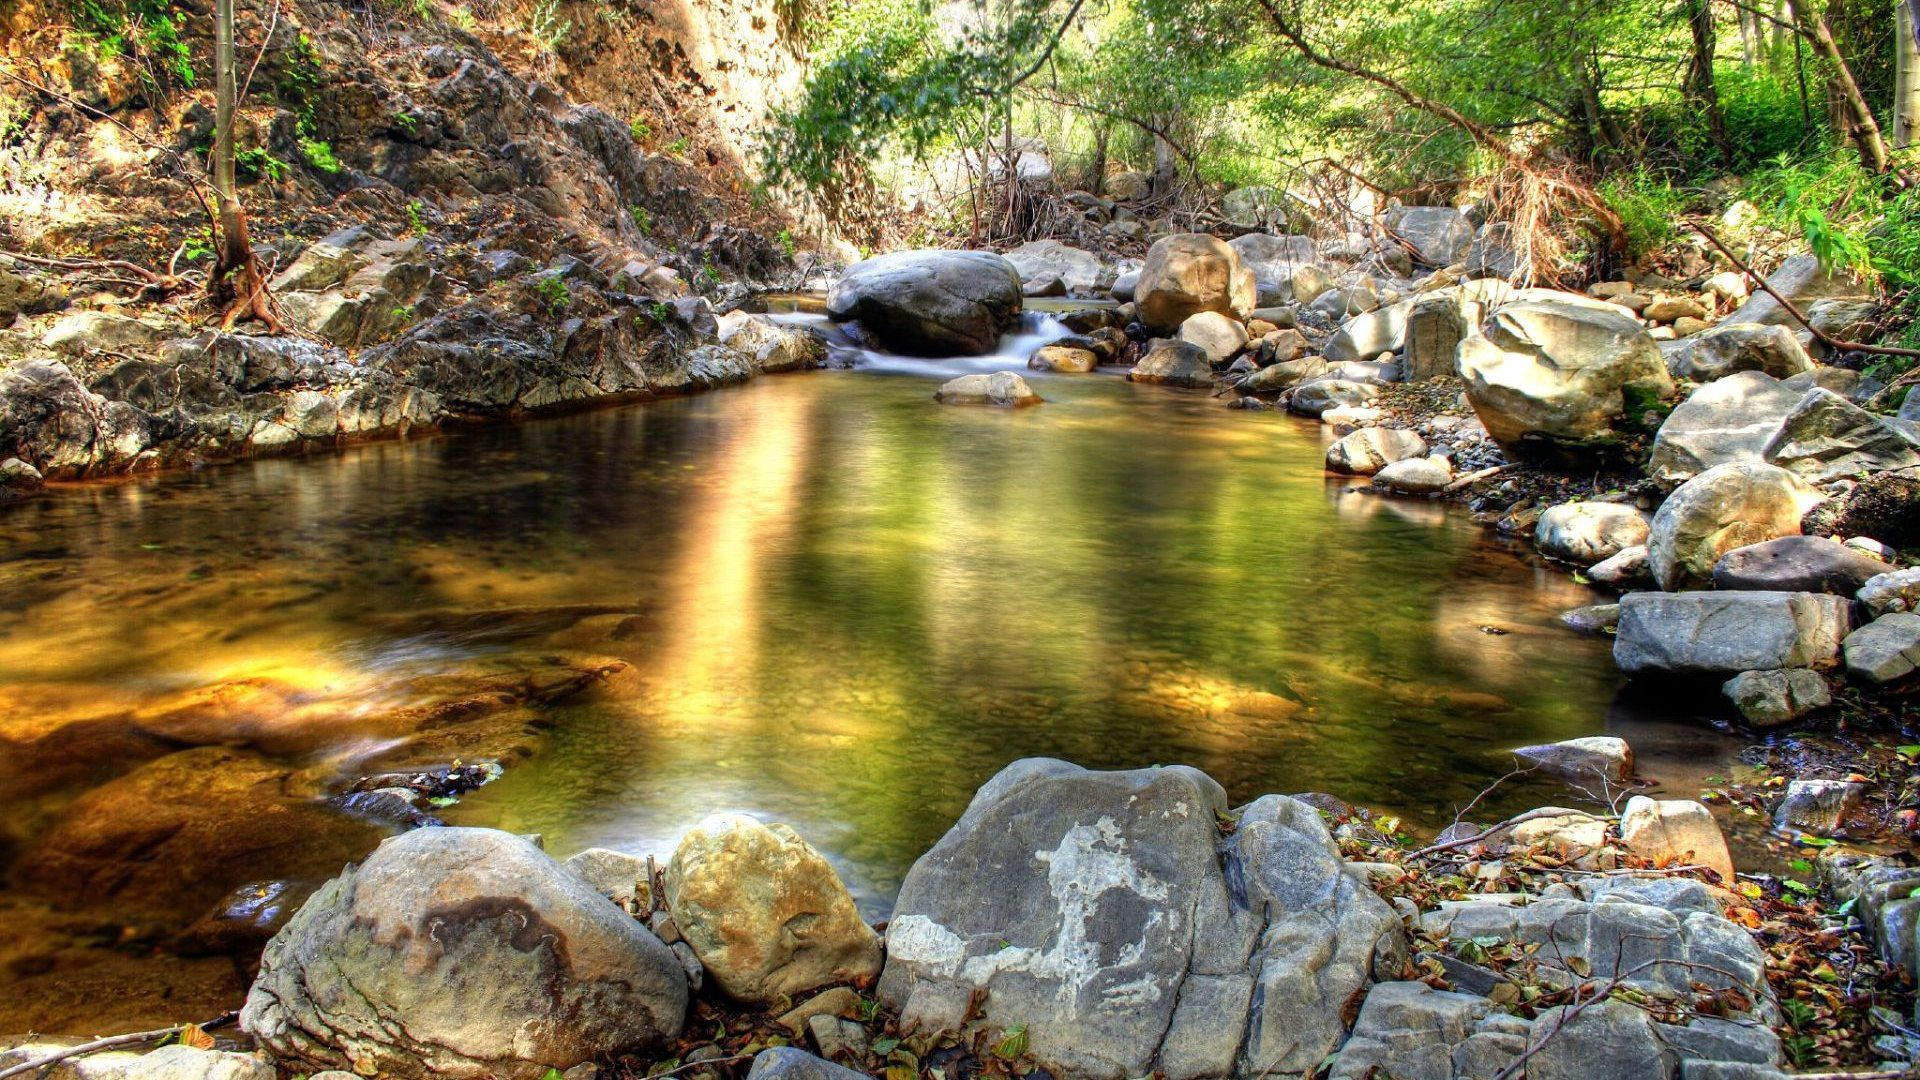 69768 download wallpaper Nature, Stones, Lake, Reflection, Clearances, Gaps, Shadow, Cool, Coolness, Spring, Creek, Brook screensavers and pictures for free